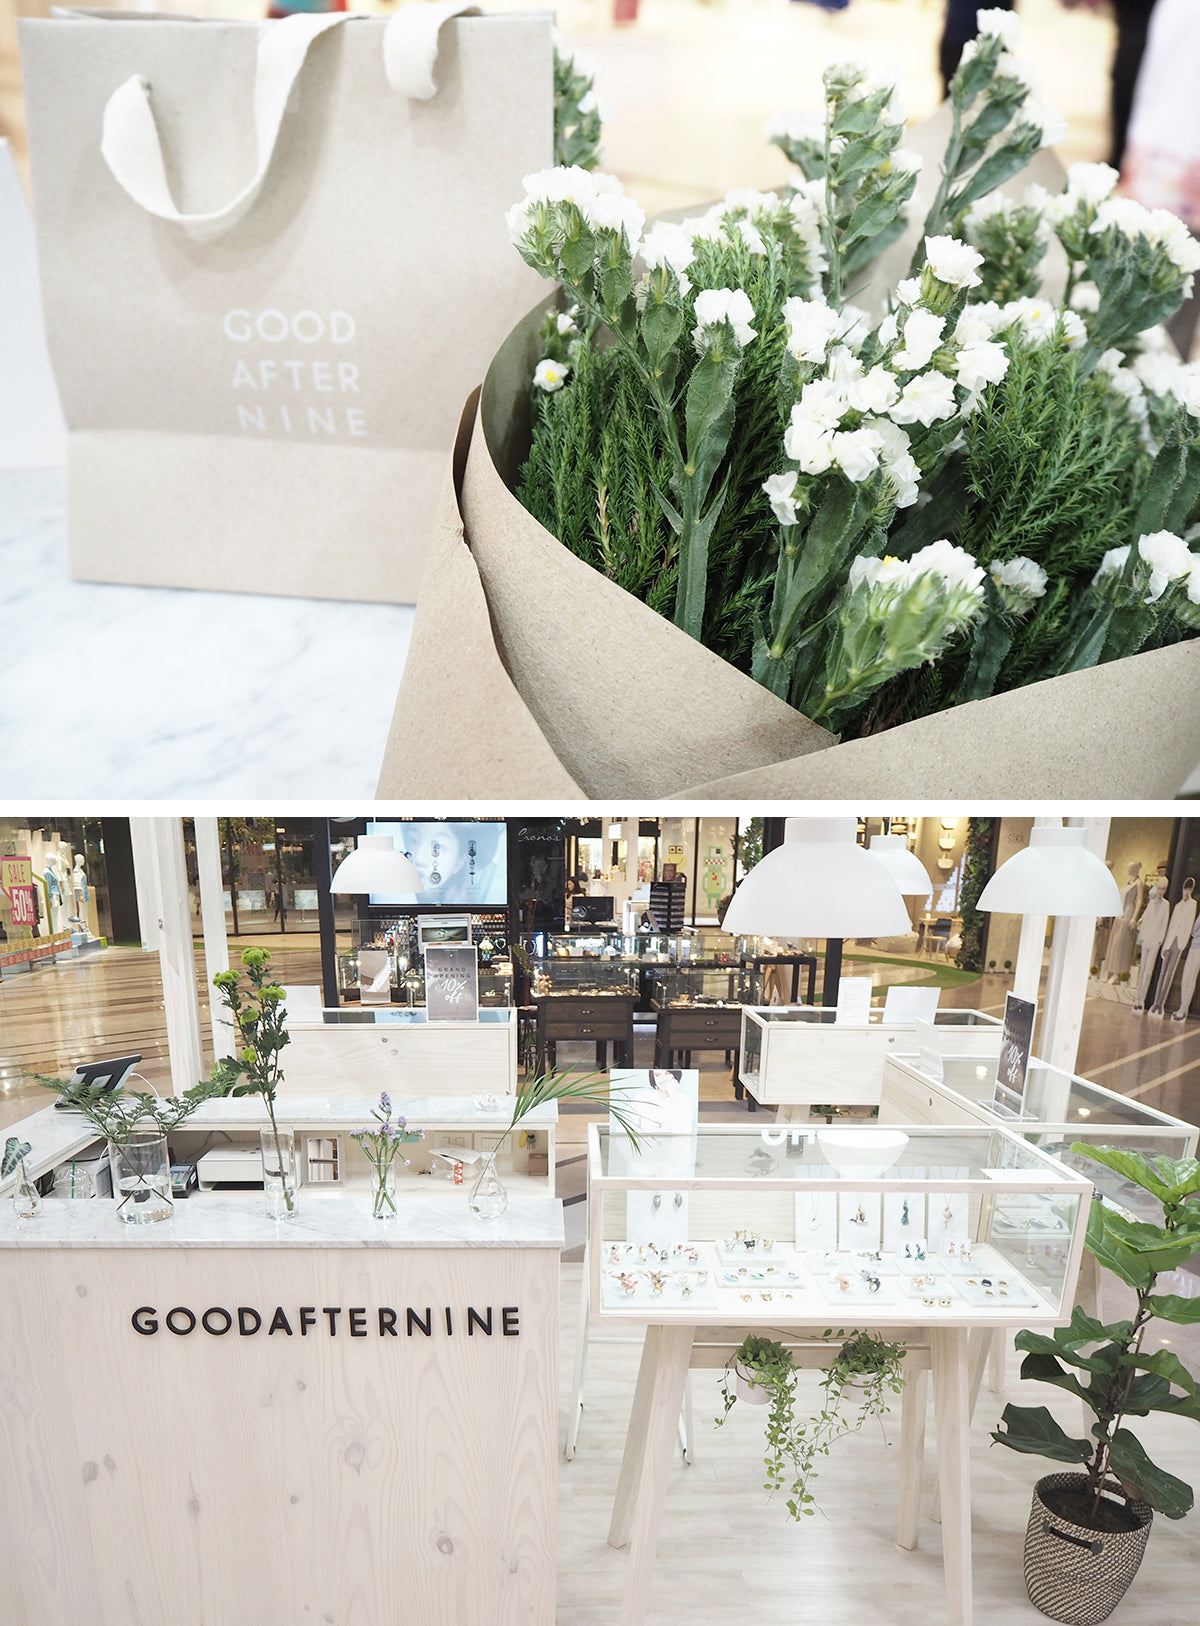 goodafternine store 001